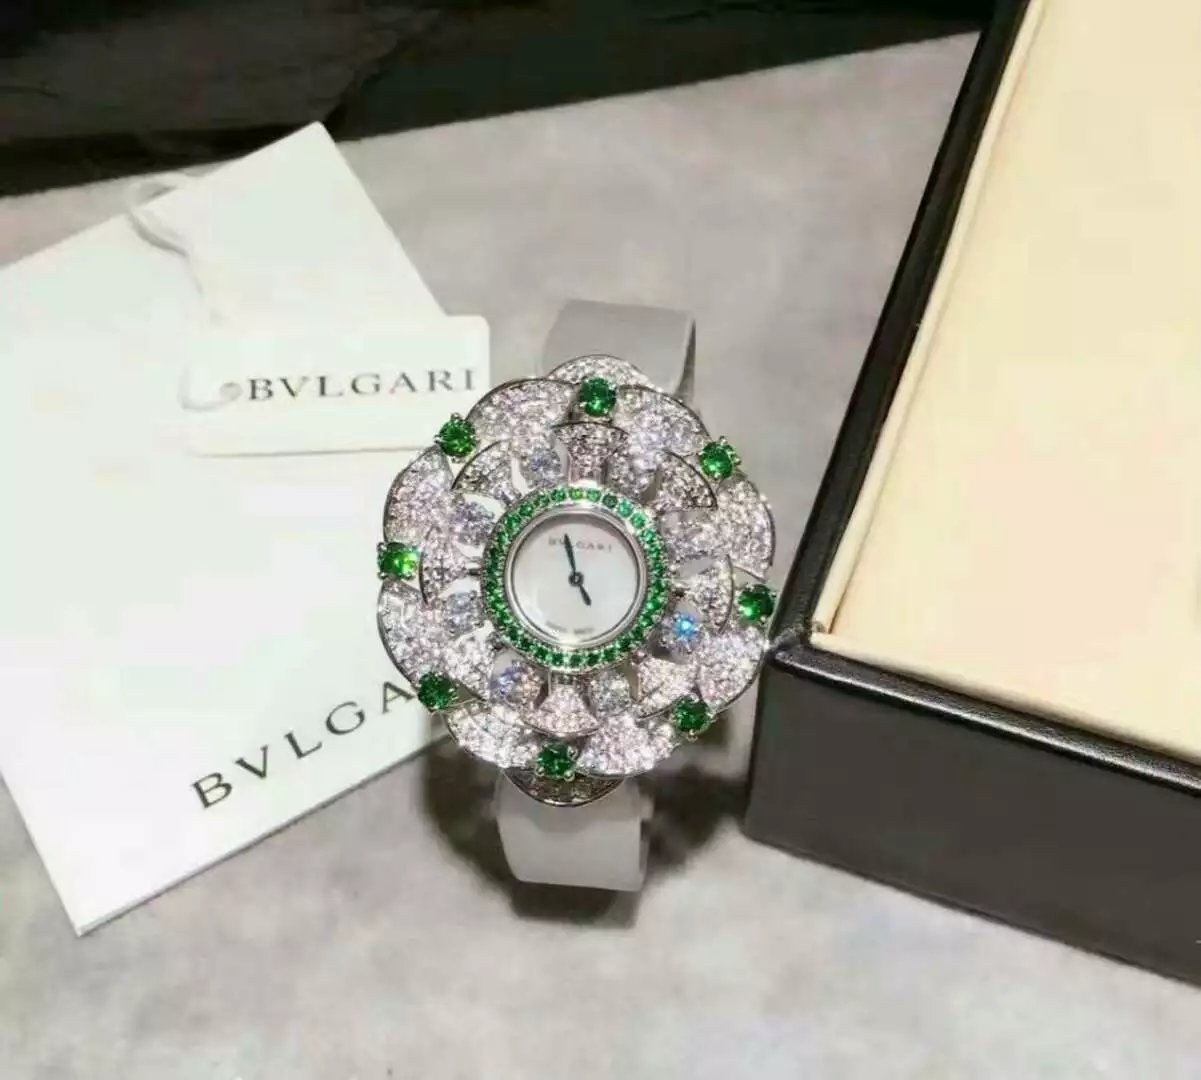 Bvlgari Watch 177